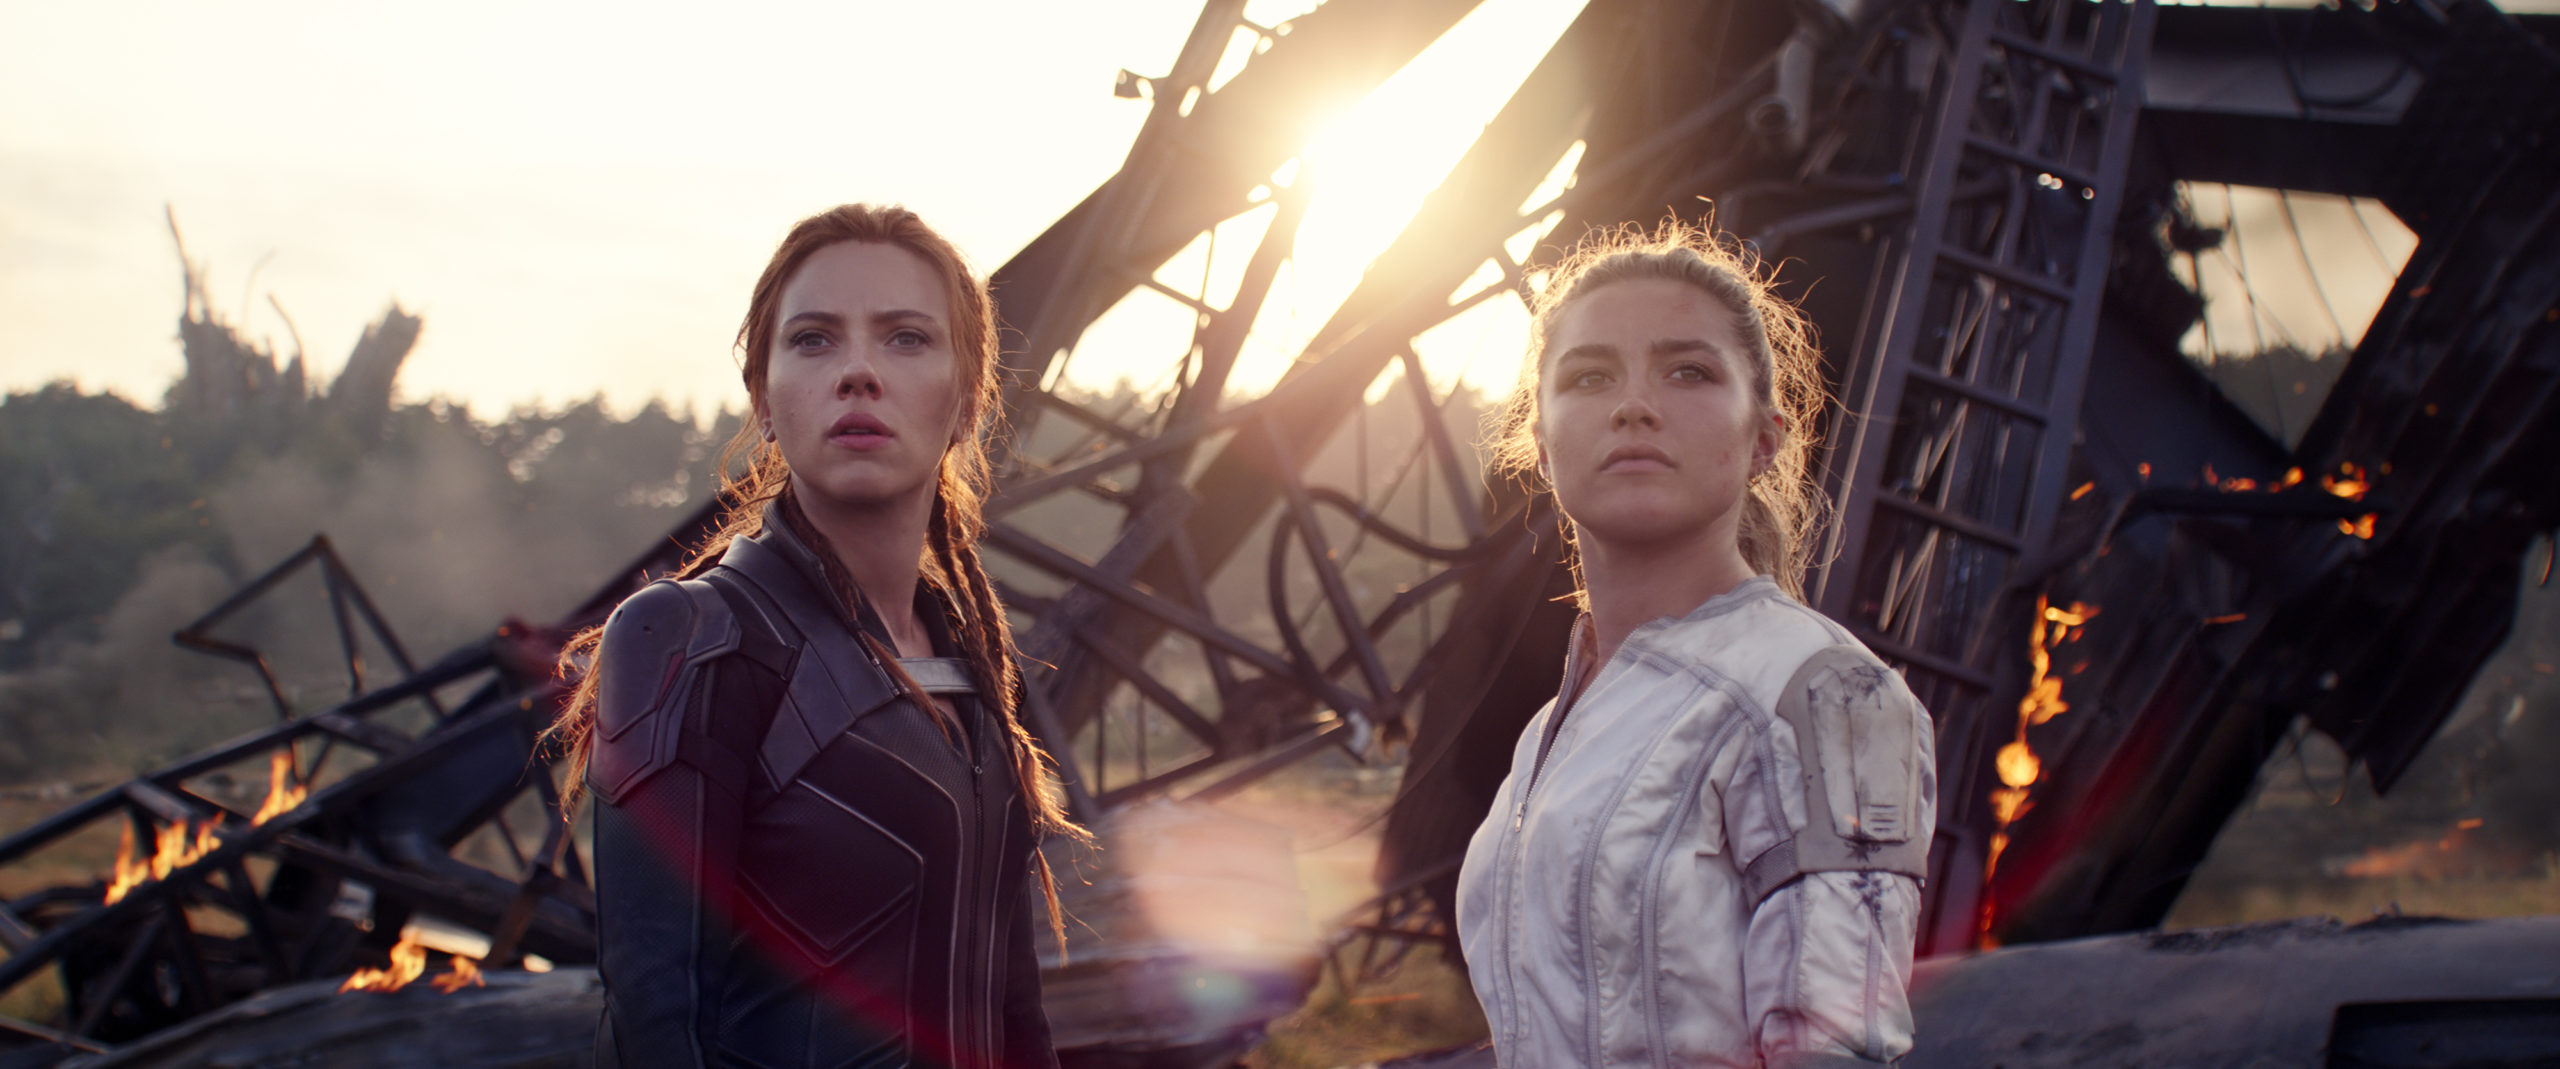 [REVIEW] FINDING FAMILY AND HUMANITY IN 'BLACK WIDOW'